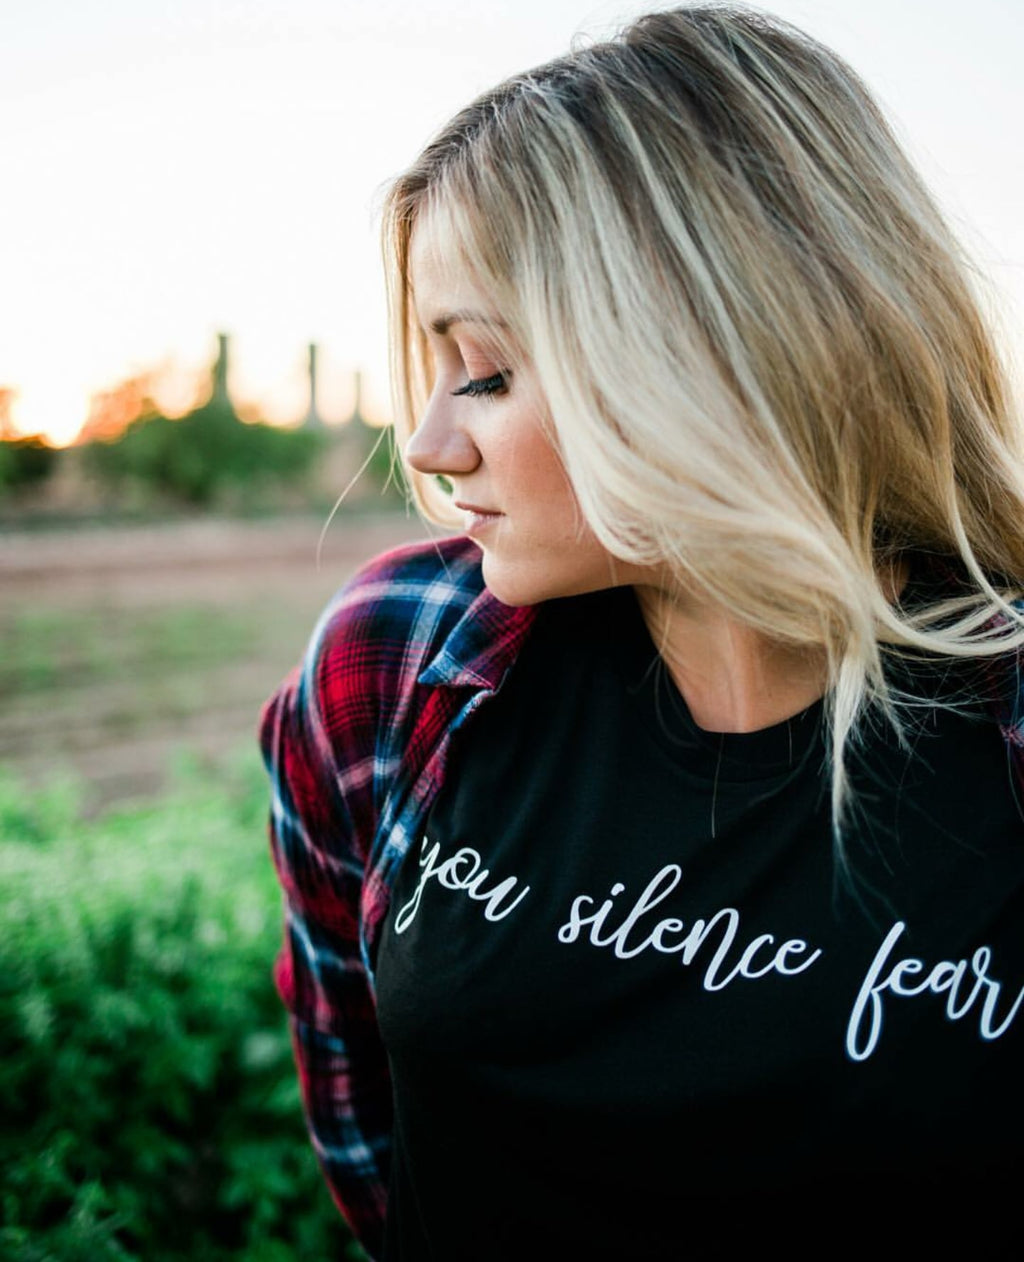 Crew Tee | You Silence Fear | The Leah - Ariella's Designs